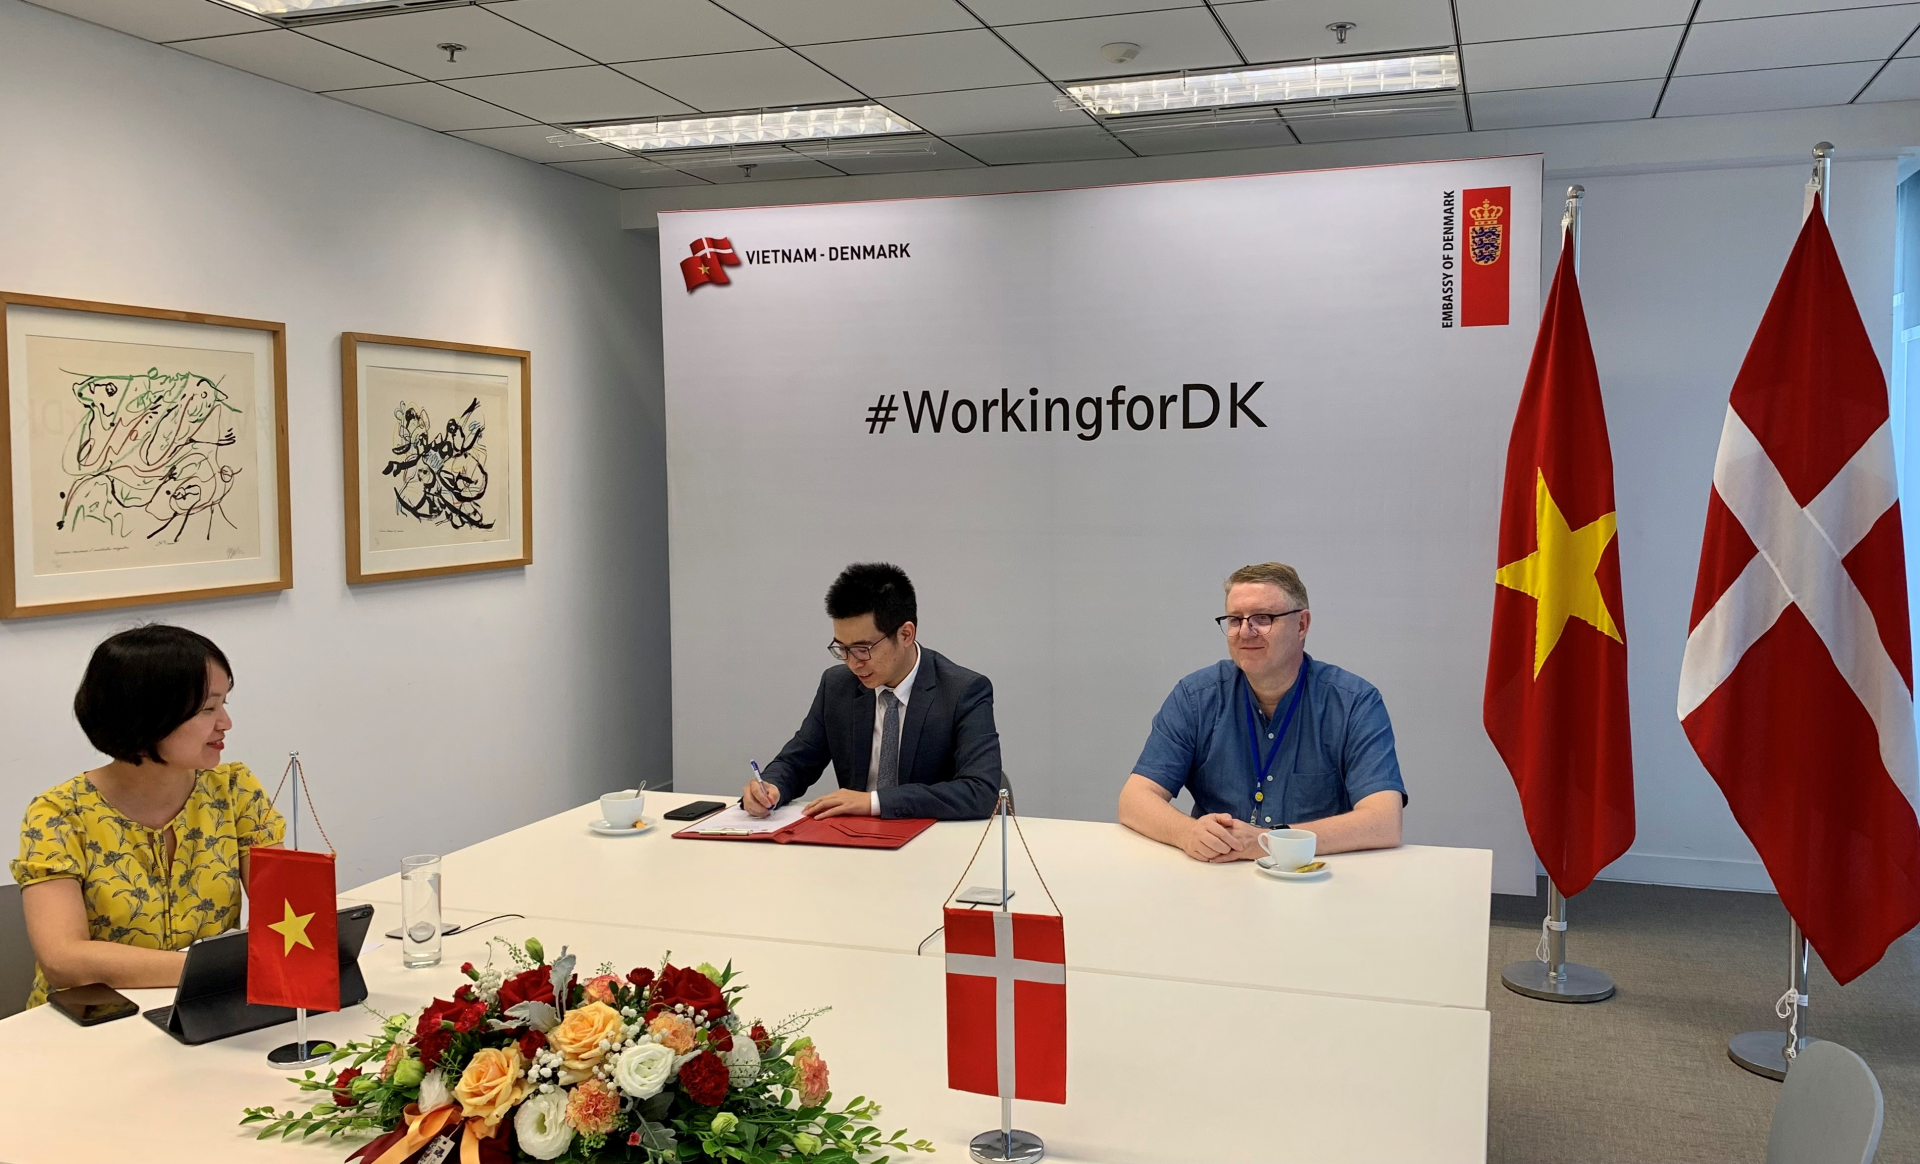 Vietnam-Denmark Offshore Wind Power Project Ready to Commence Its Geological Survey